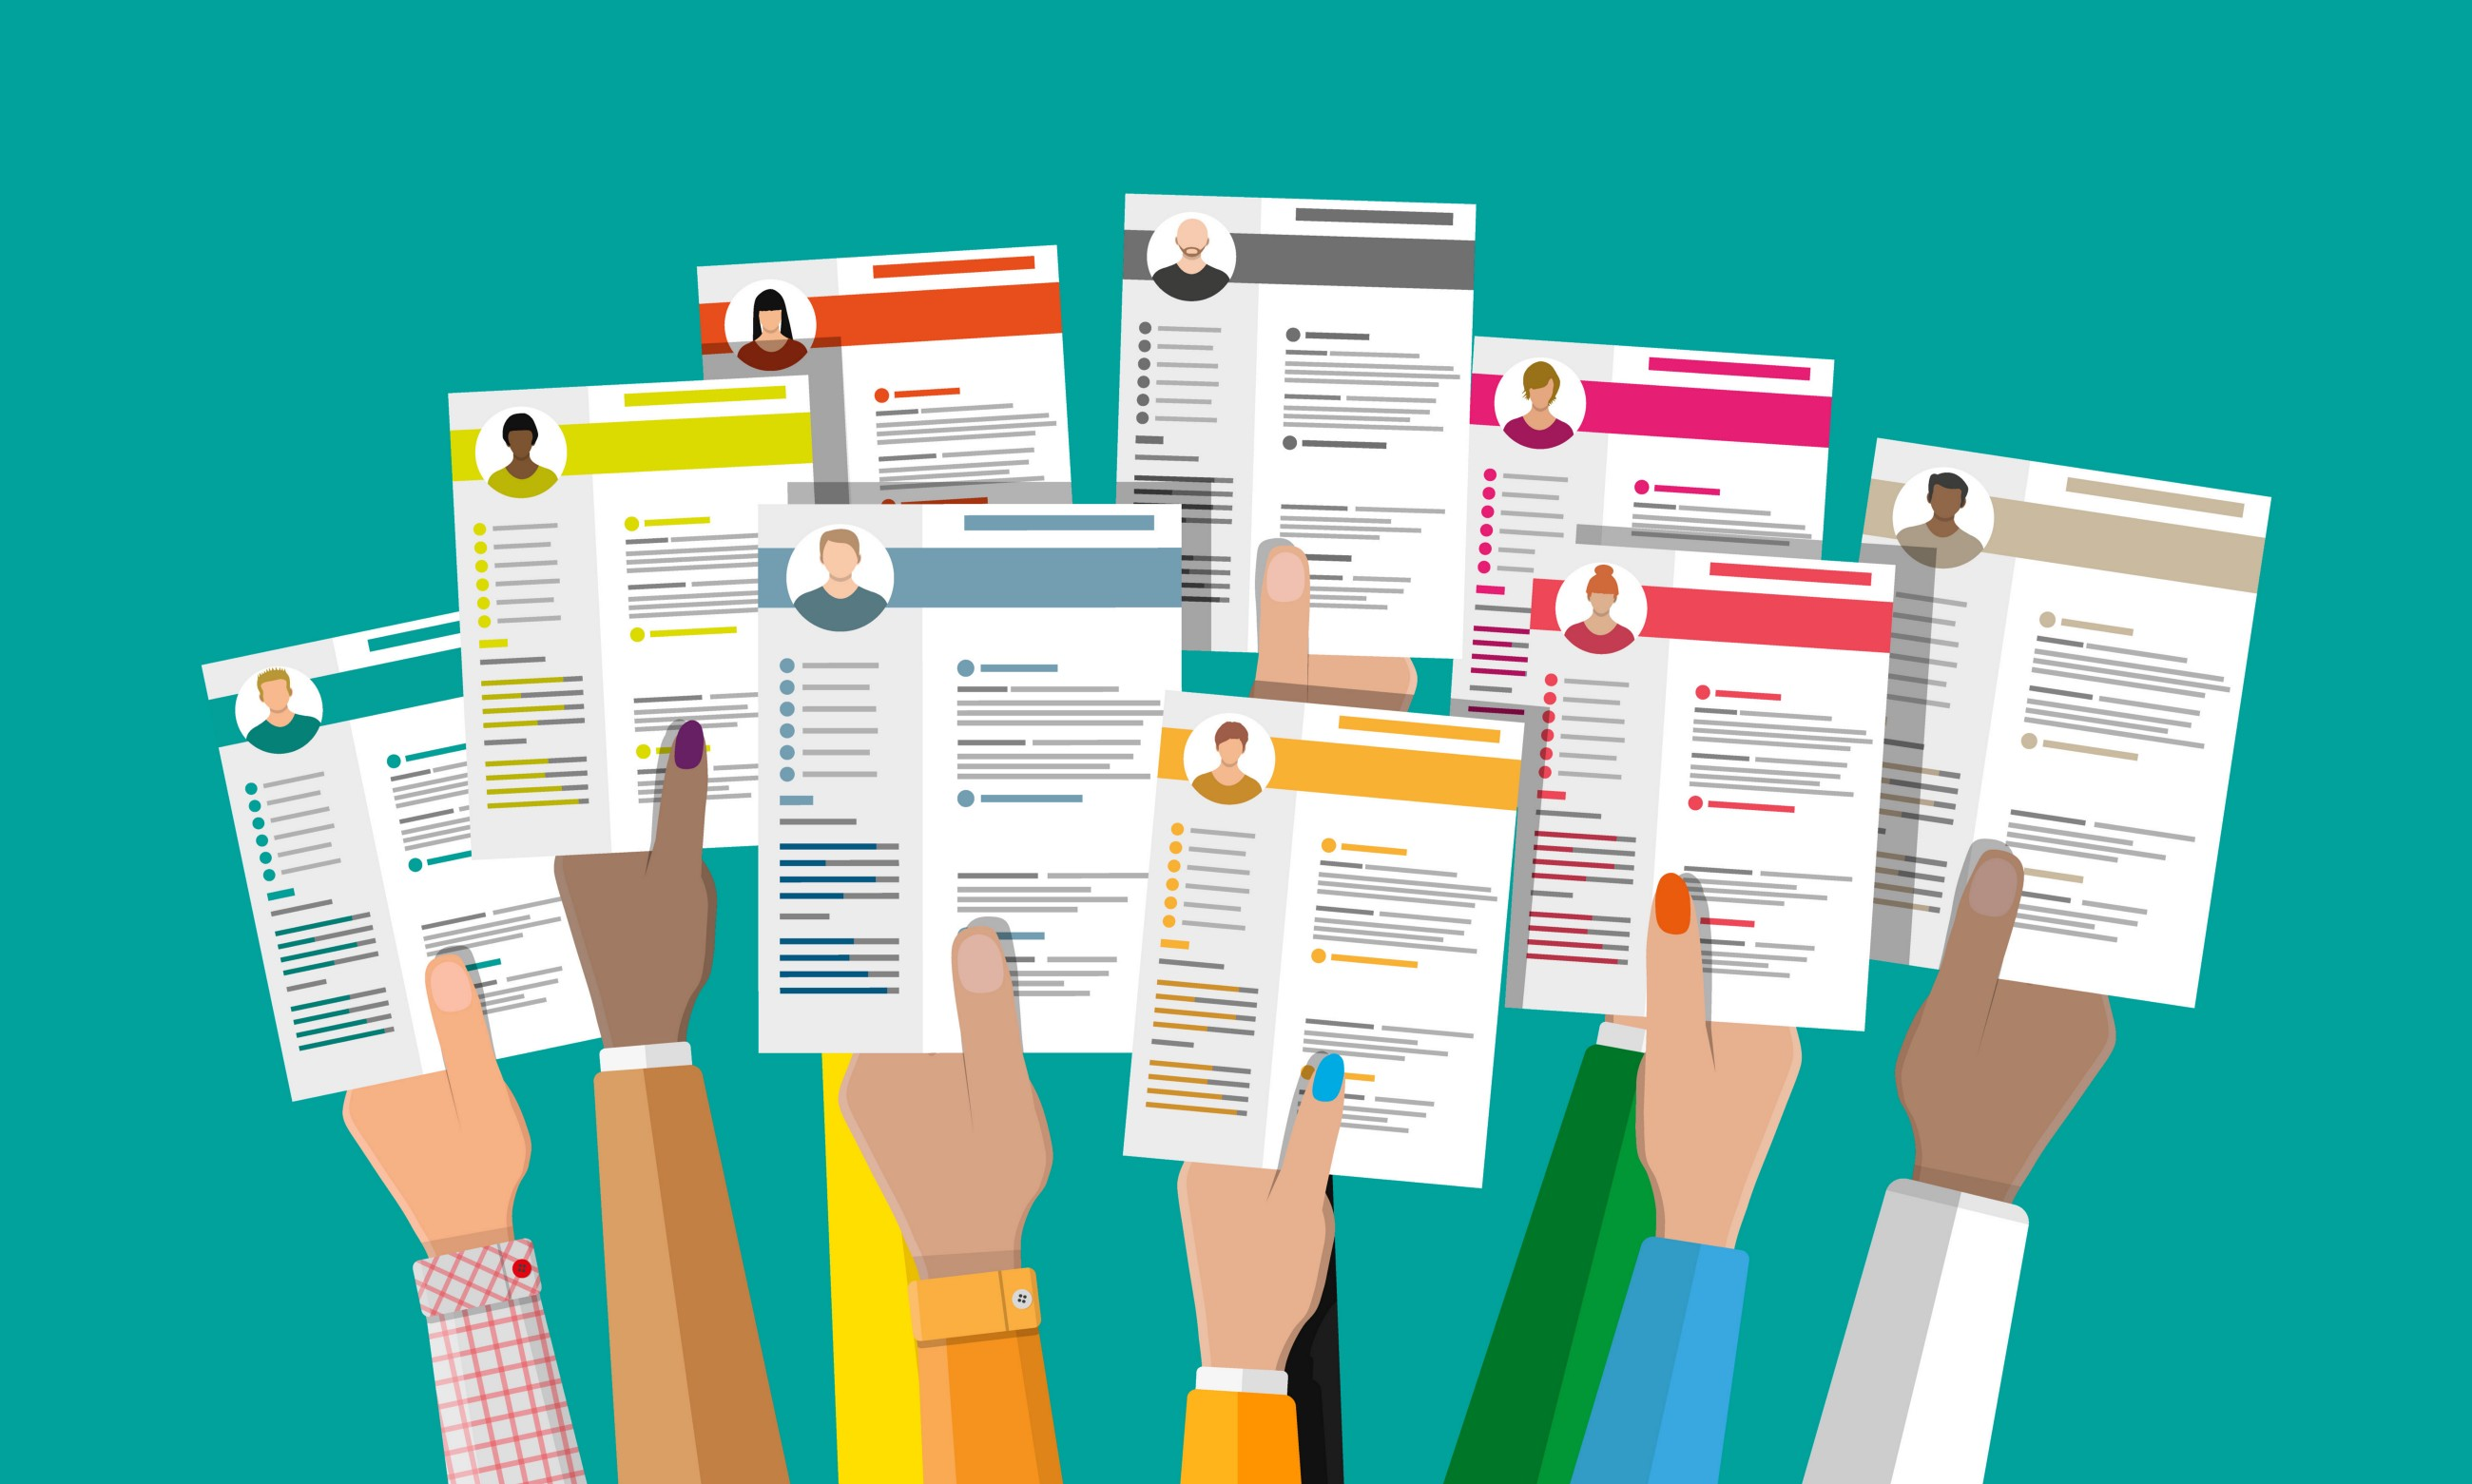 How to Build a Resume Recommender like the Applicant Tracking System (ATS)